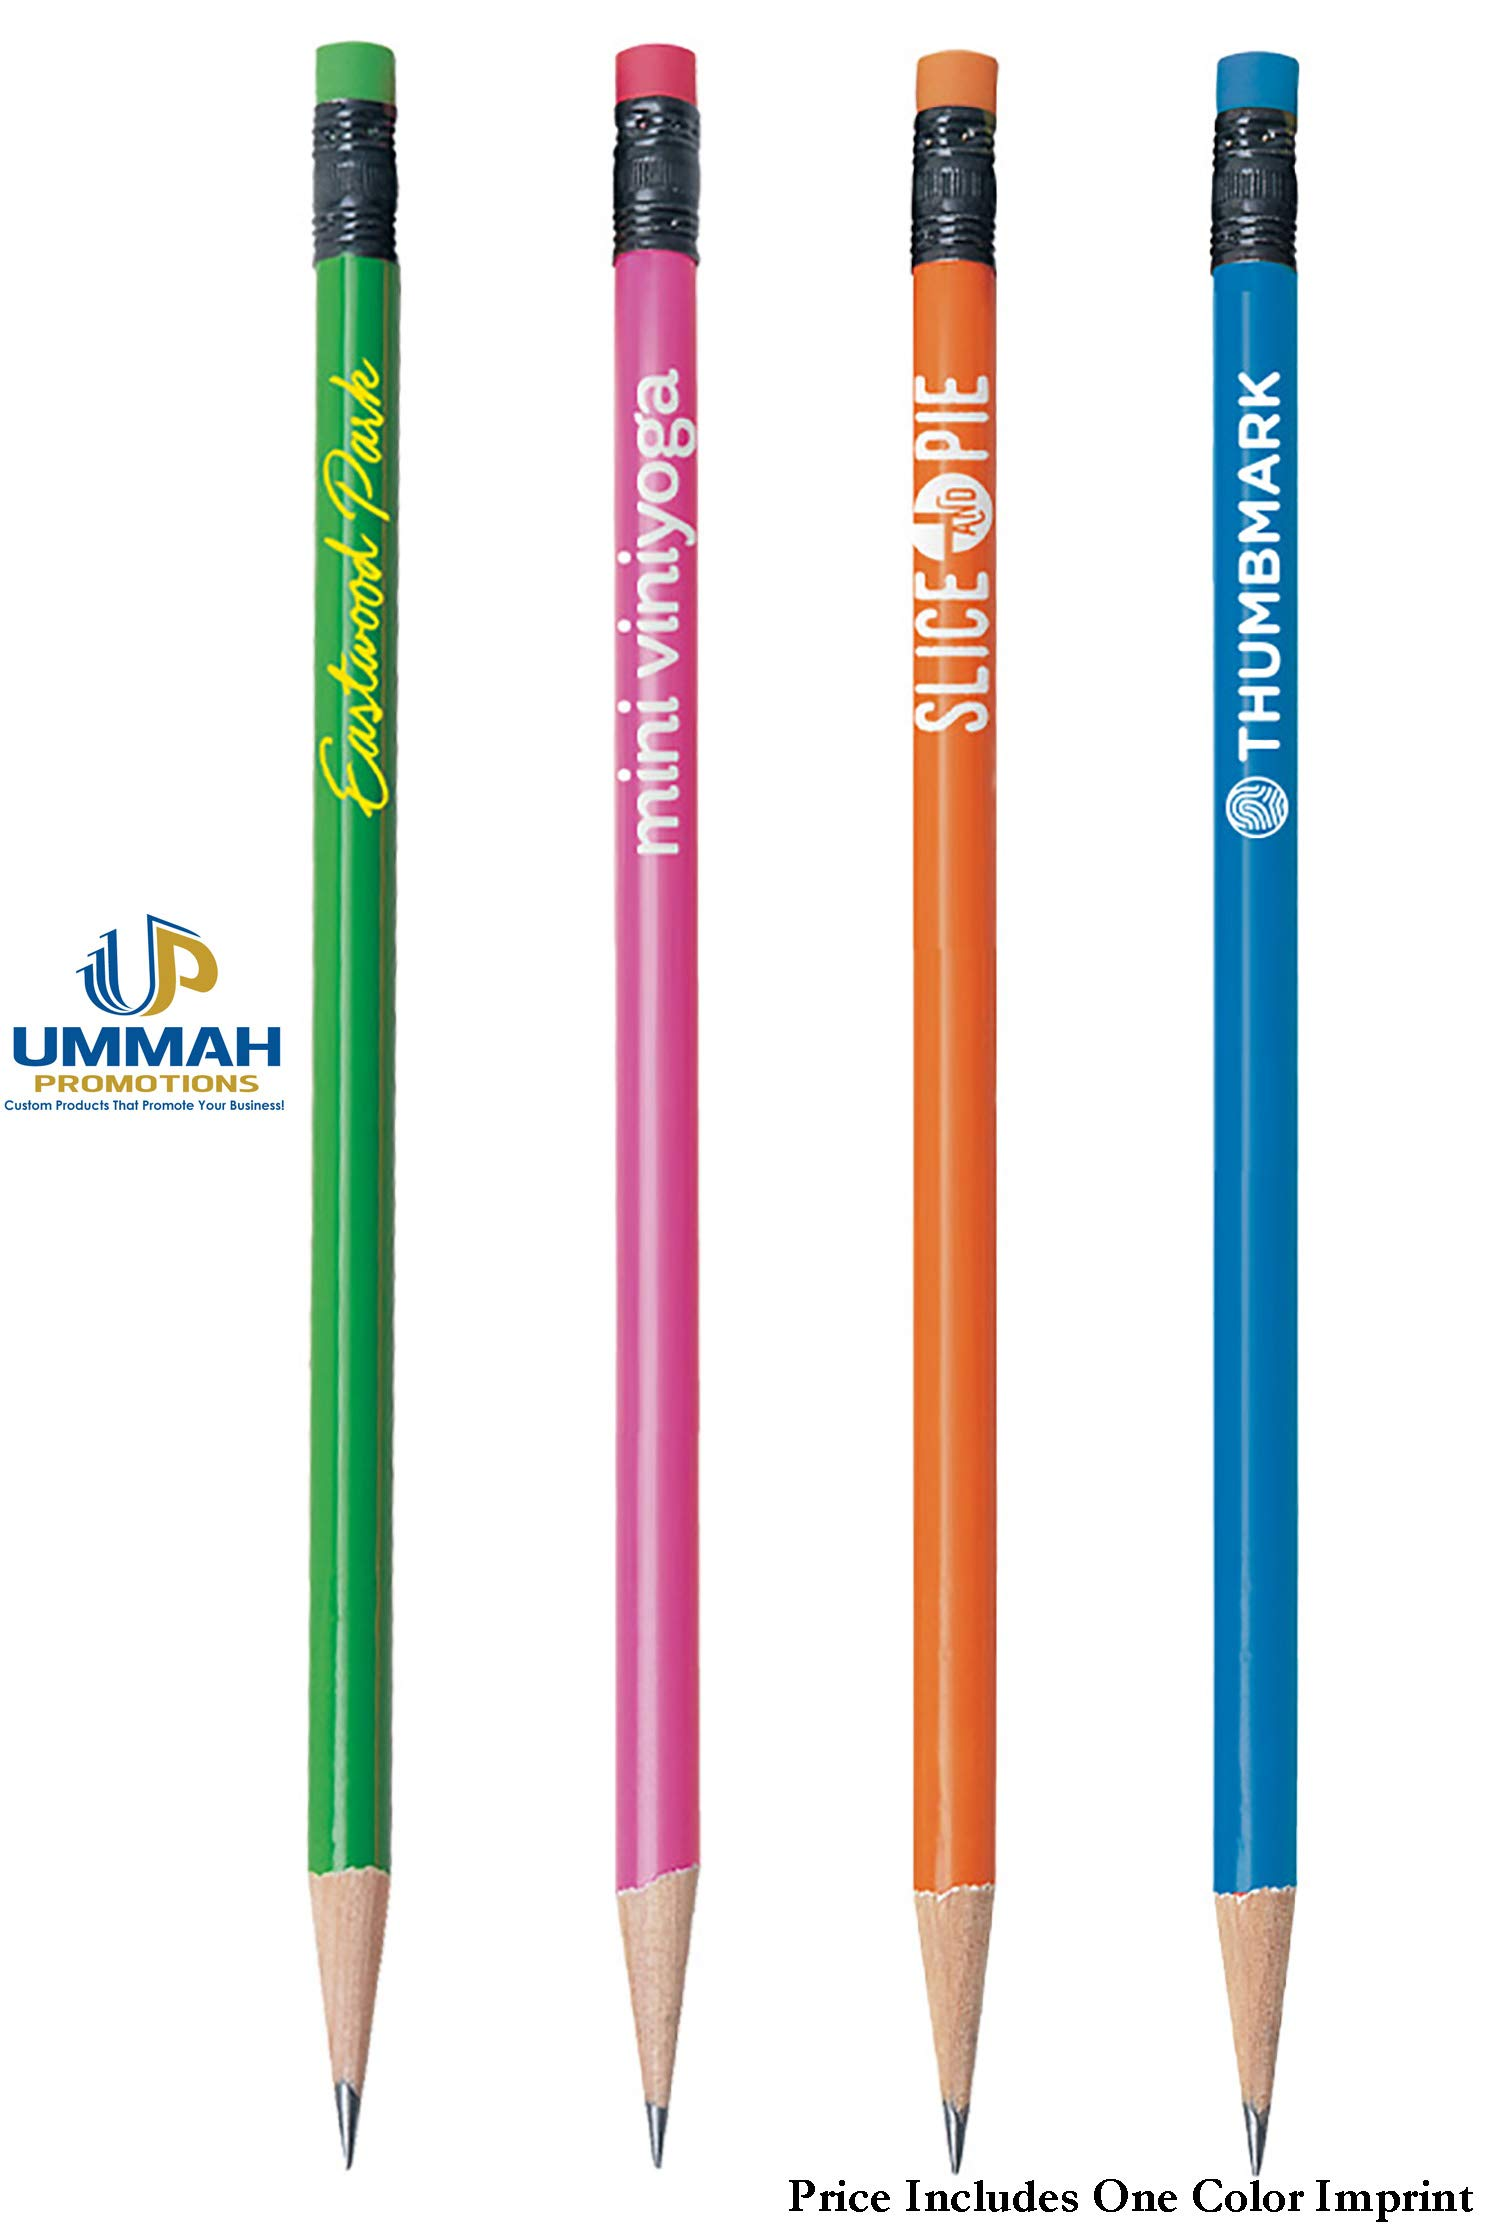 576 Personalized Neon Round #2 Pencils Printed with Your Company/School Logo or Message